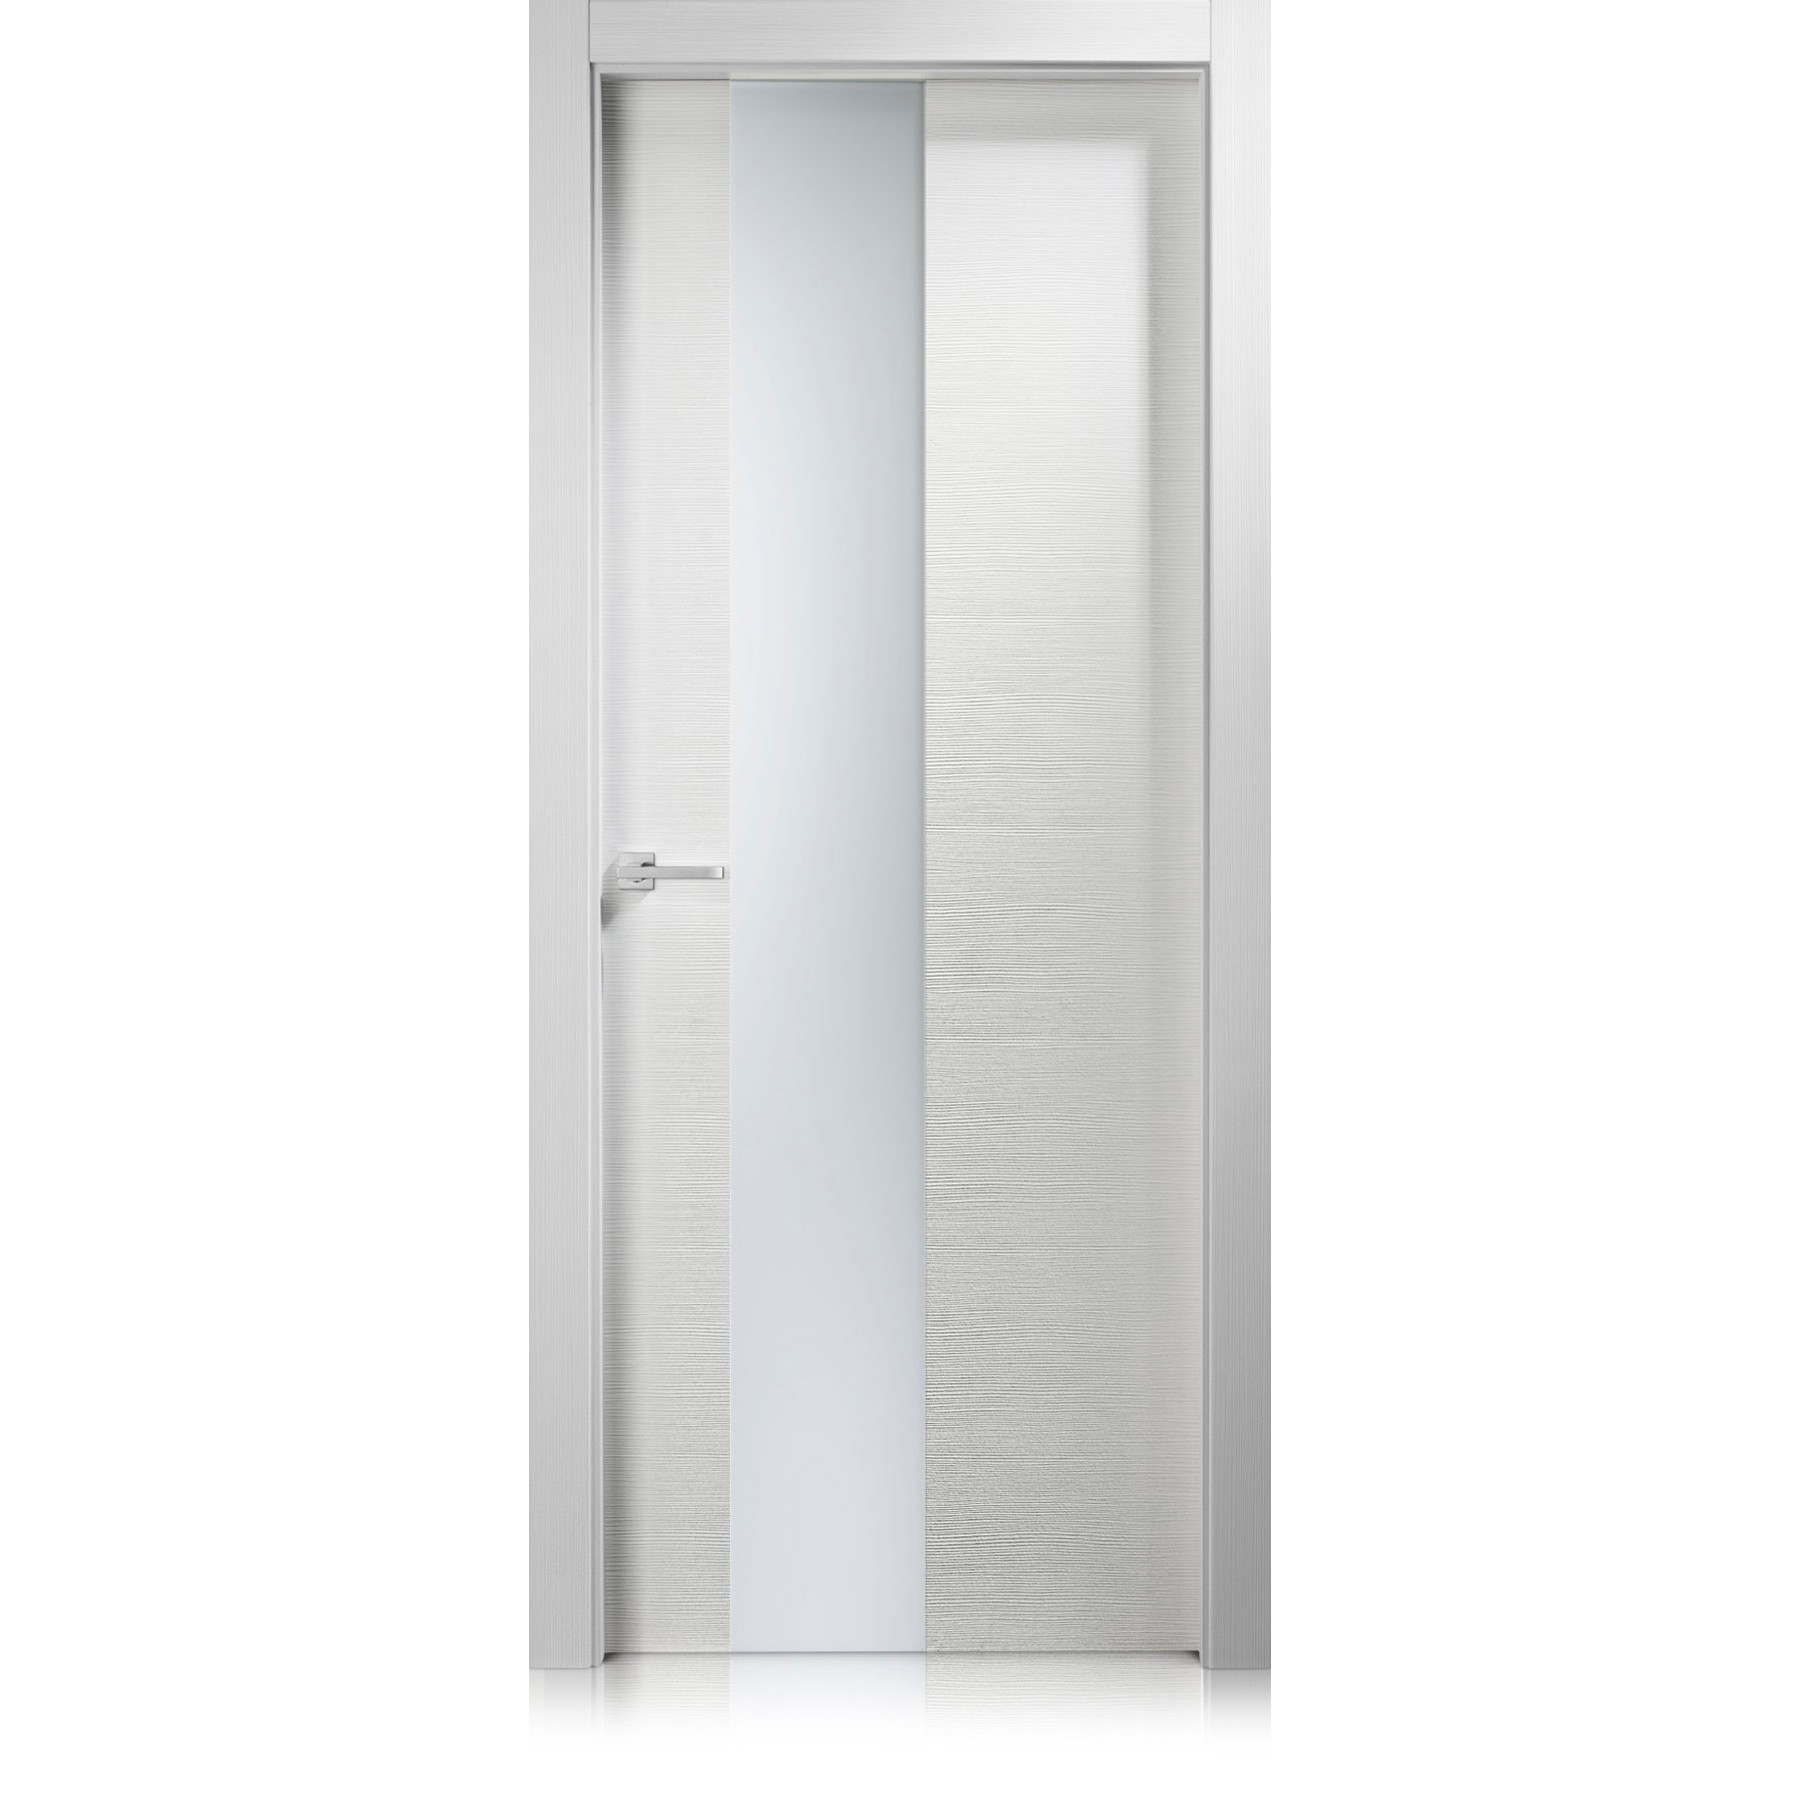 Logica Vetro transparent / frosted glass door